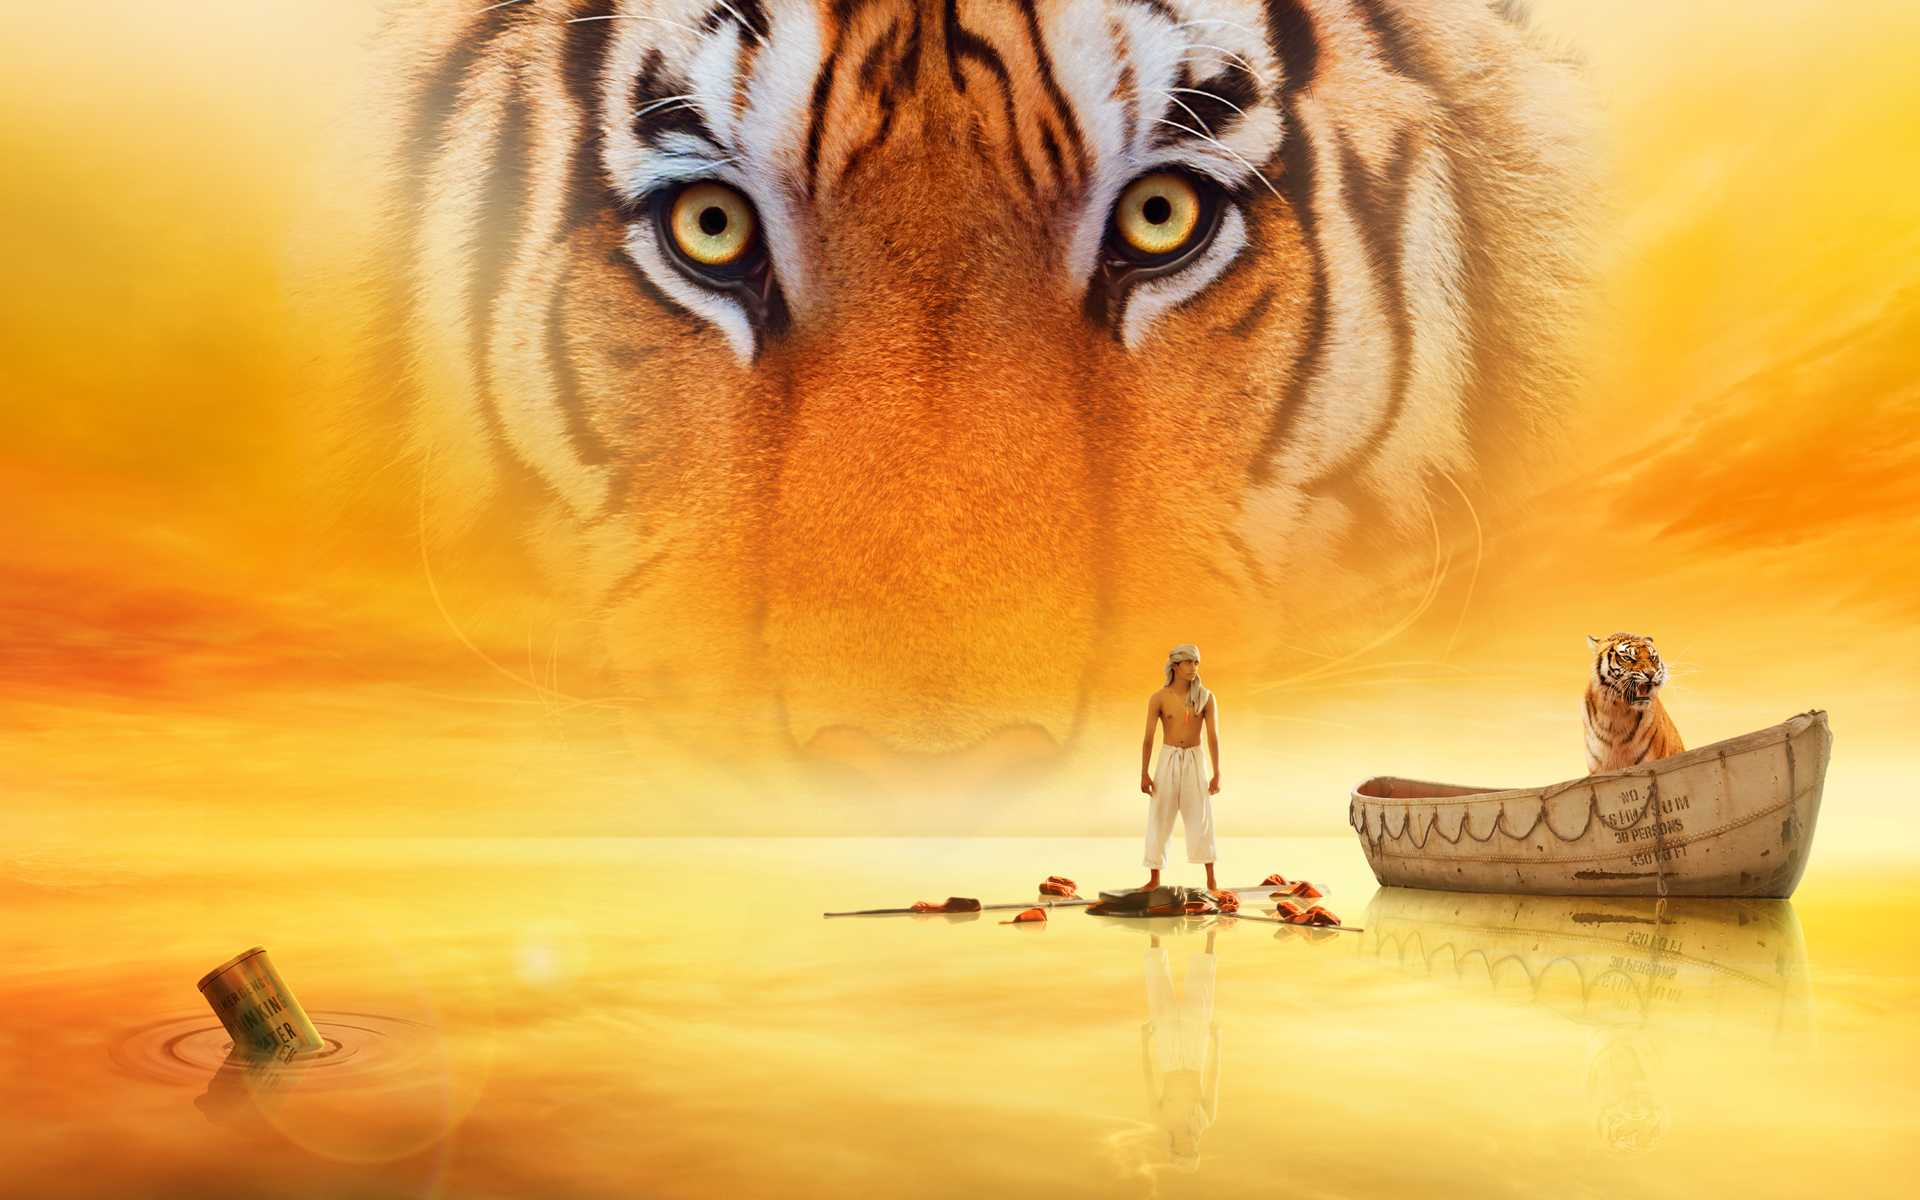 life of pi meaning of freedom Life of pi is a novel by yann martel life of pi study guide contains a biography of author yann martel, literature essays, quiz questions, major themes, characters, and a full summary and analysis.